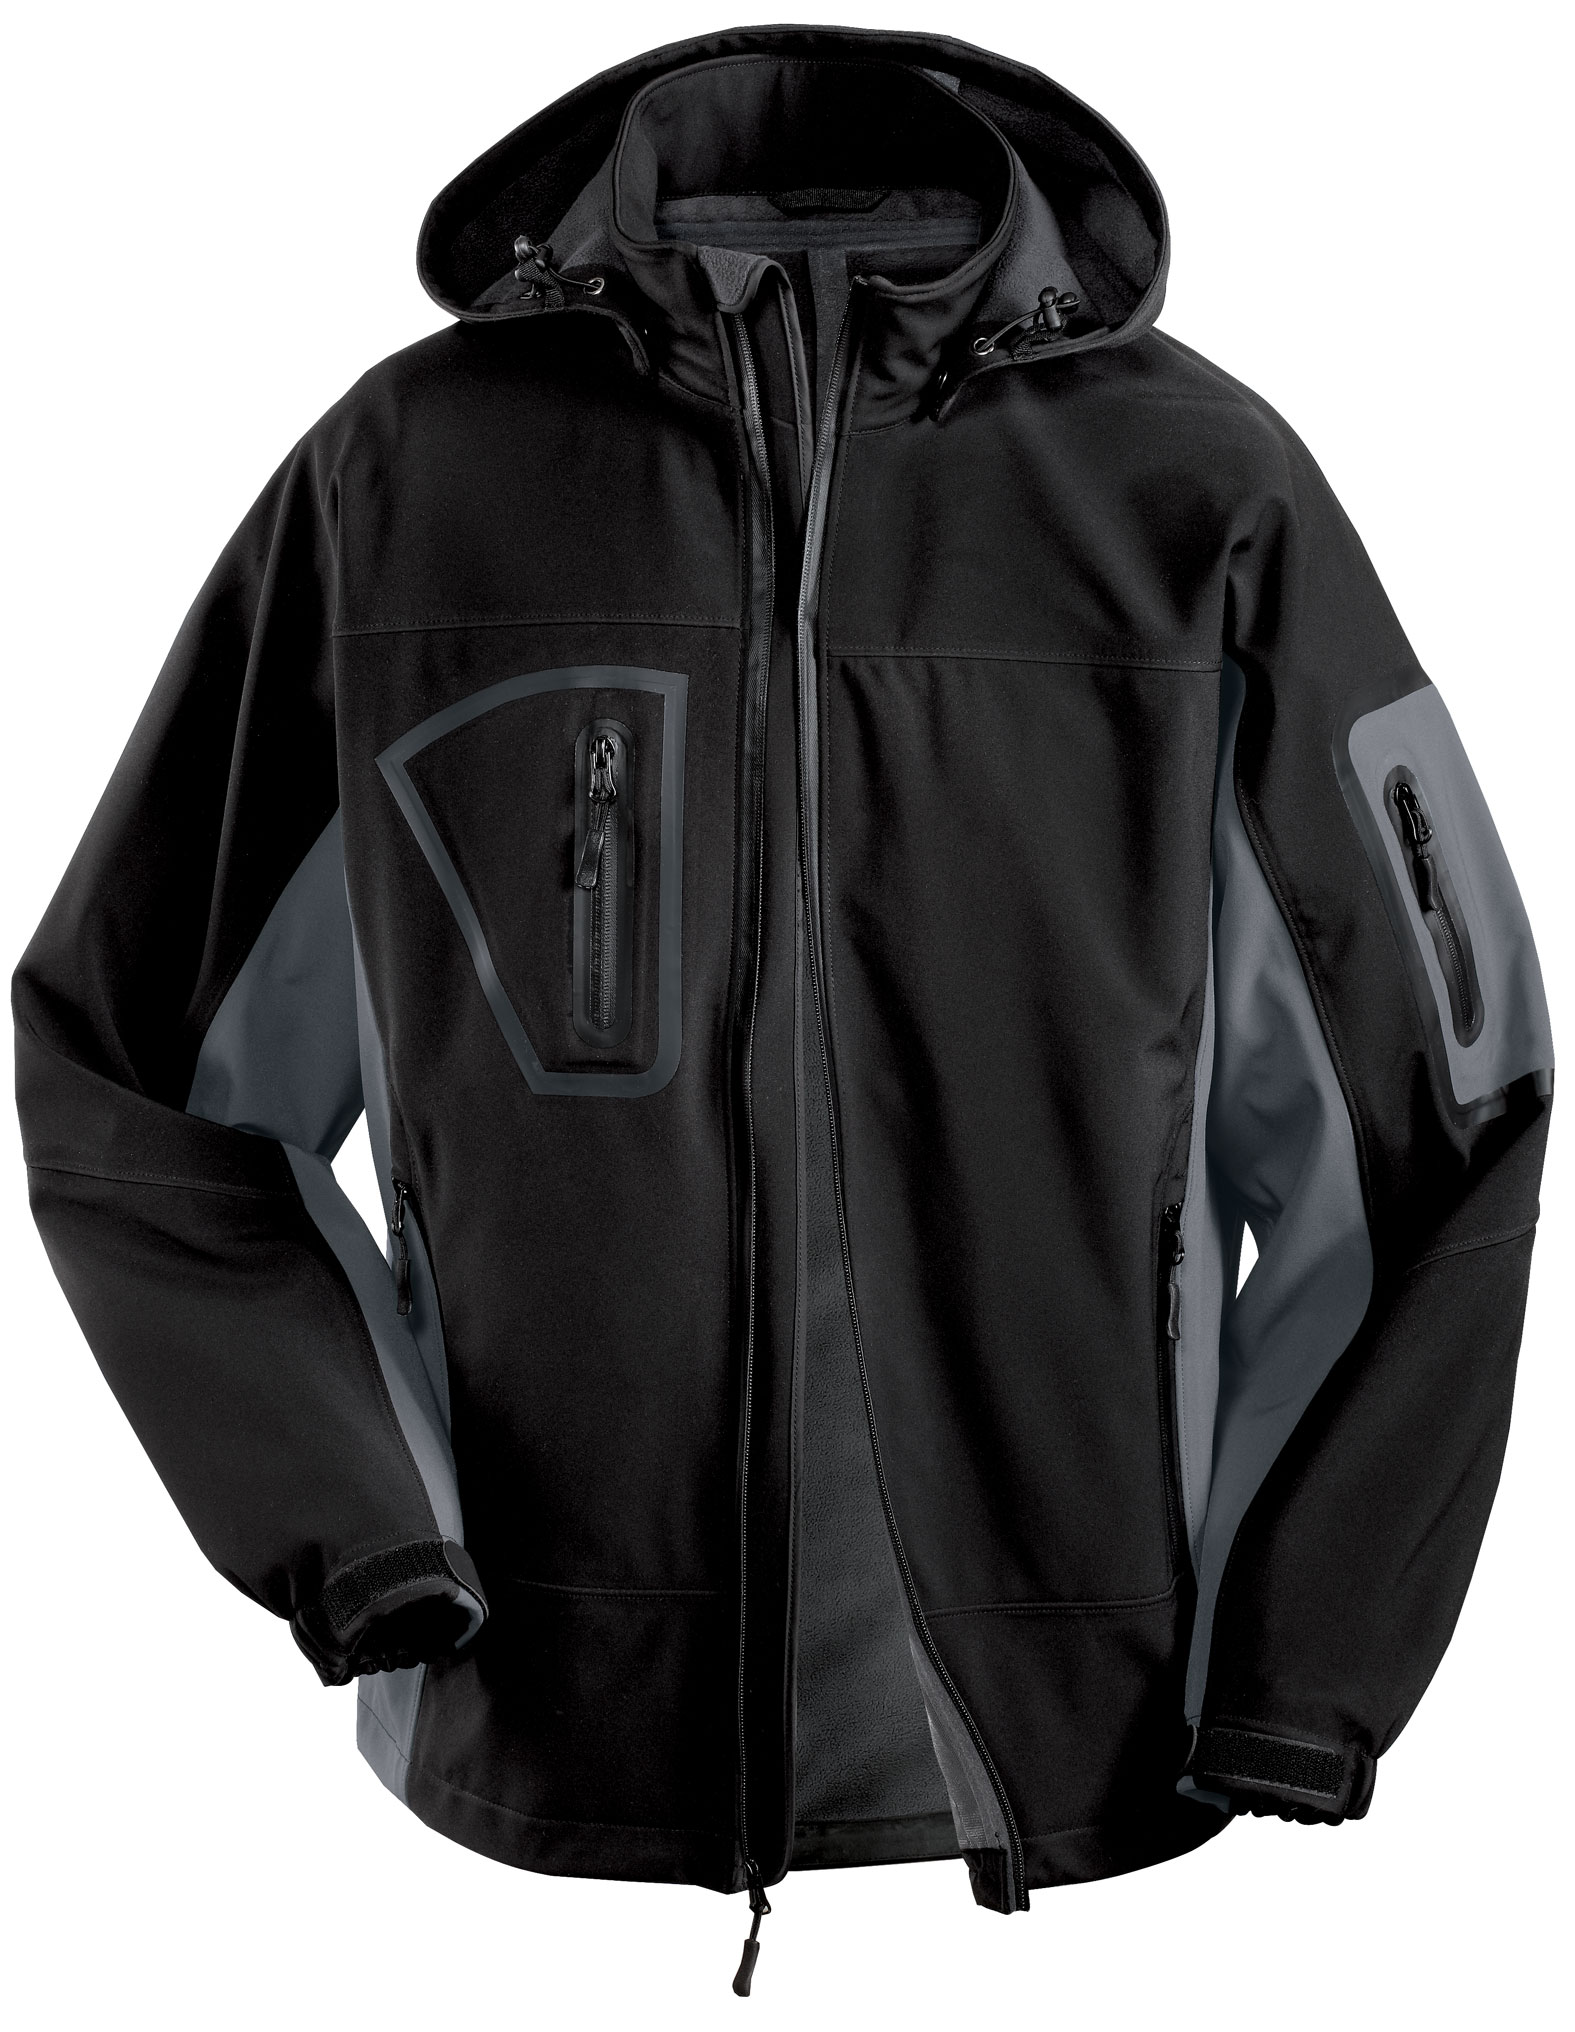 Mens Waterproof Soft Shell Jacket